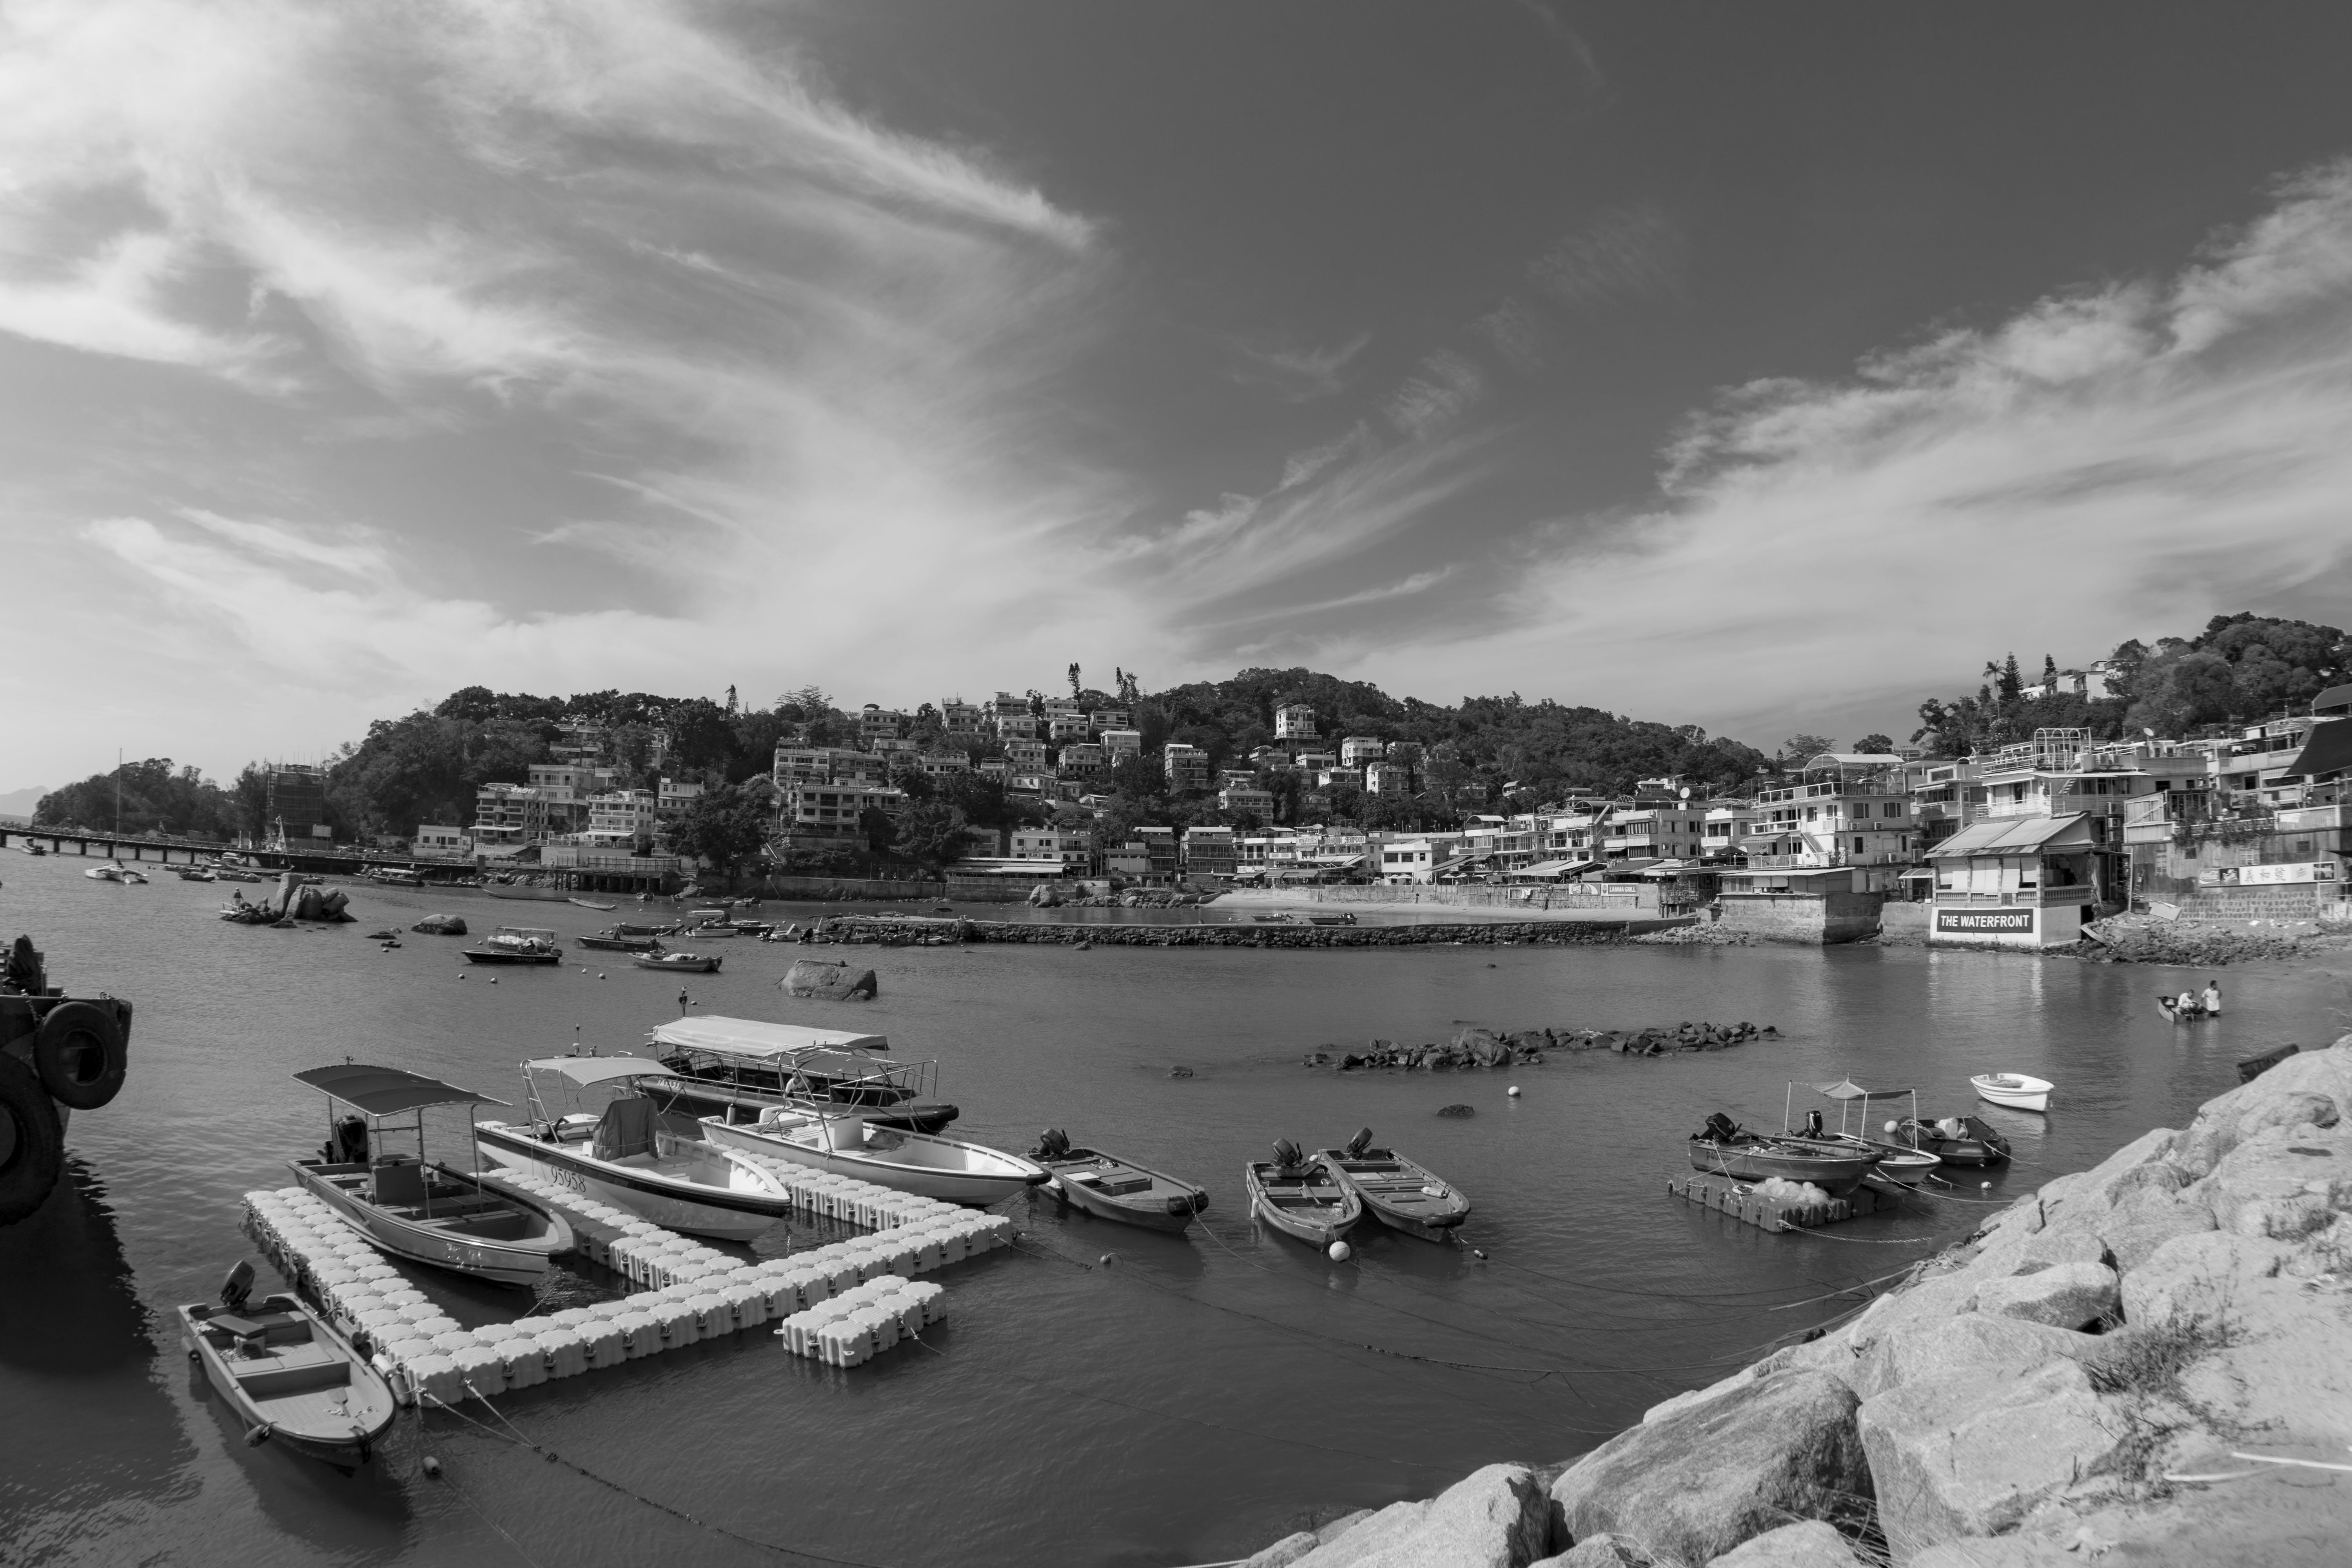 Grayscale Photography of Port Near Houses